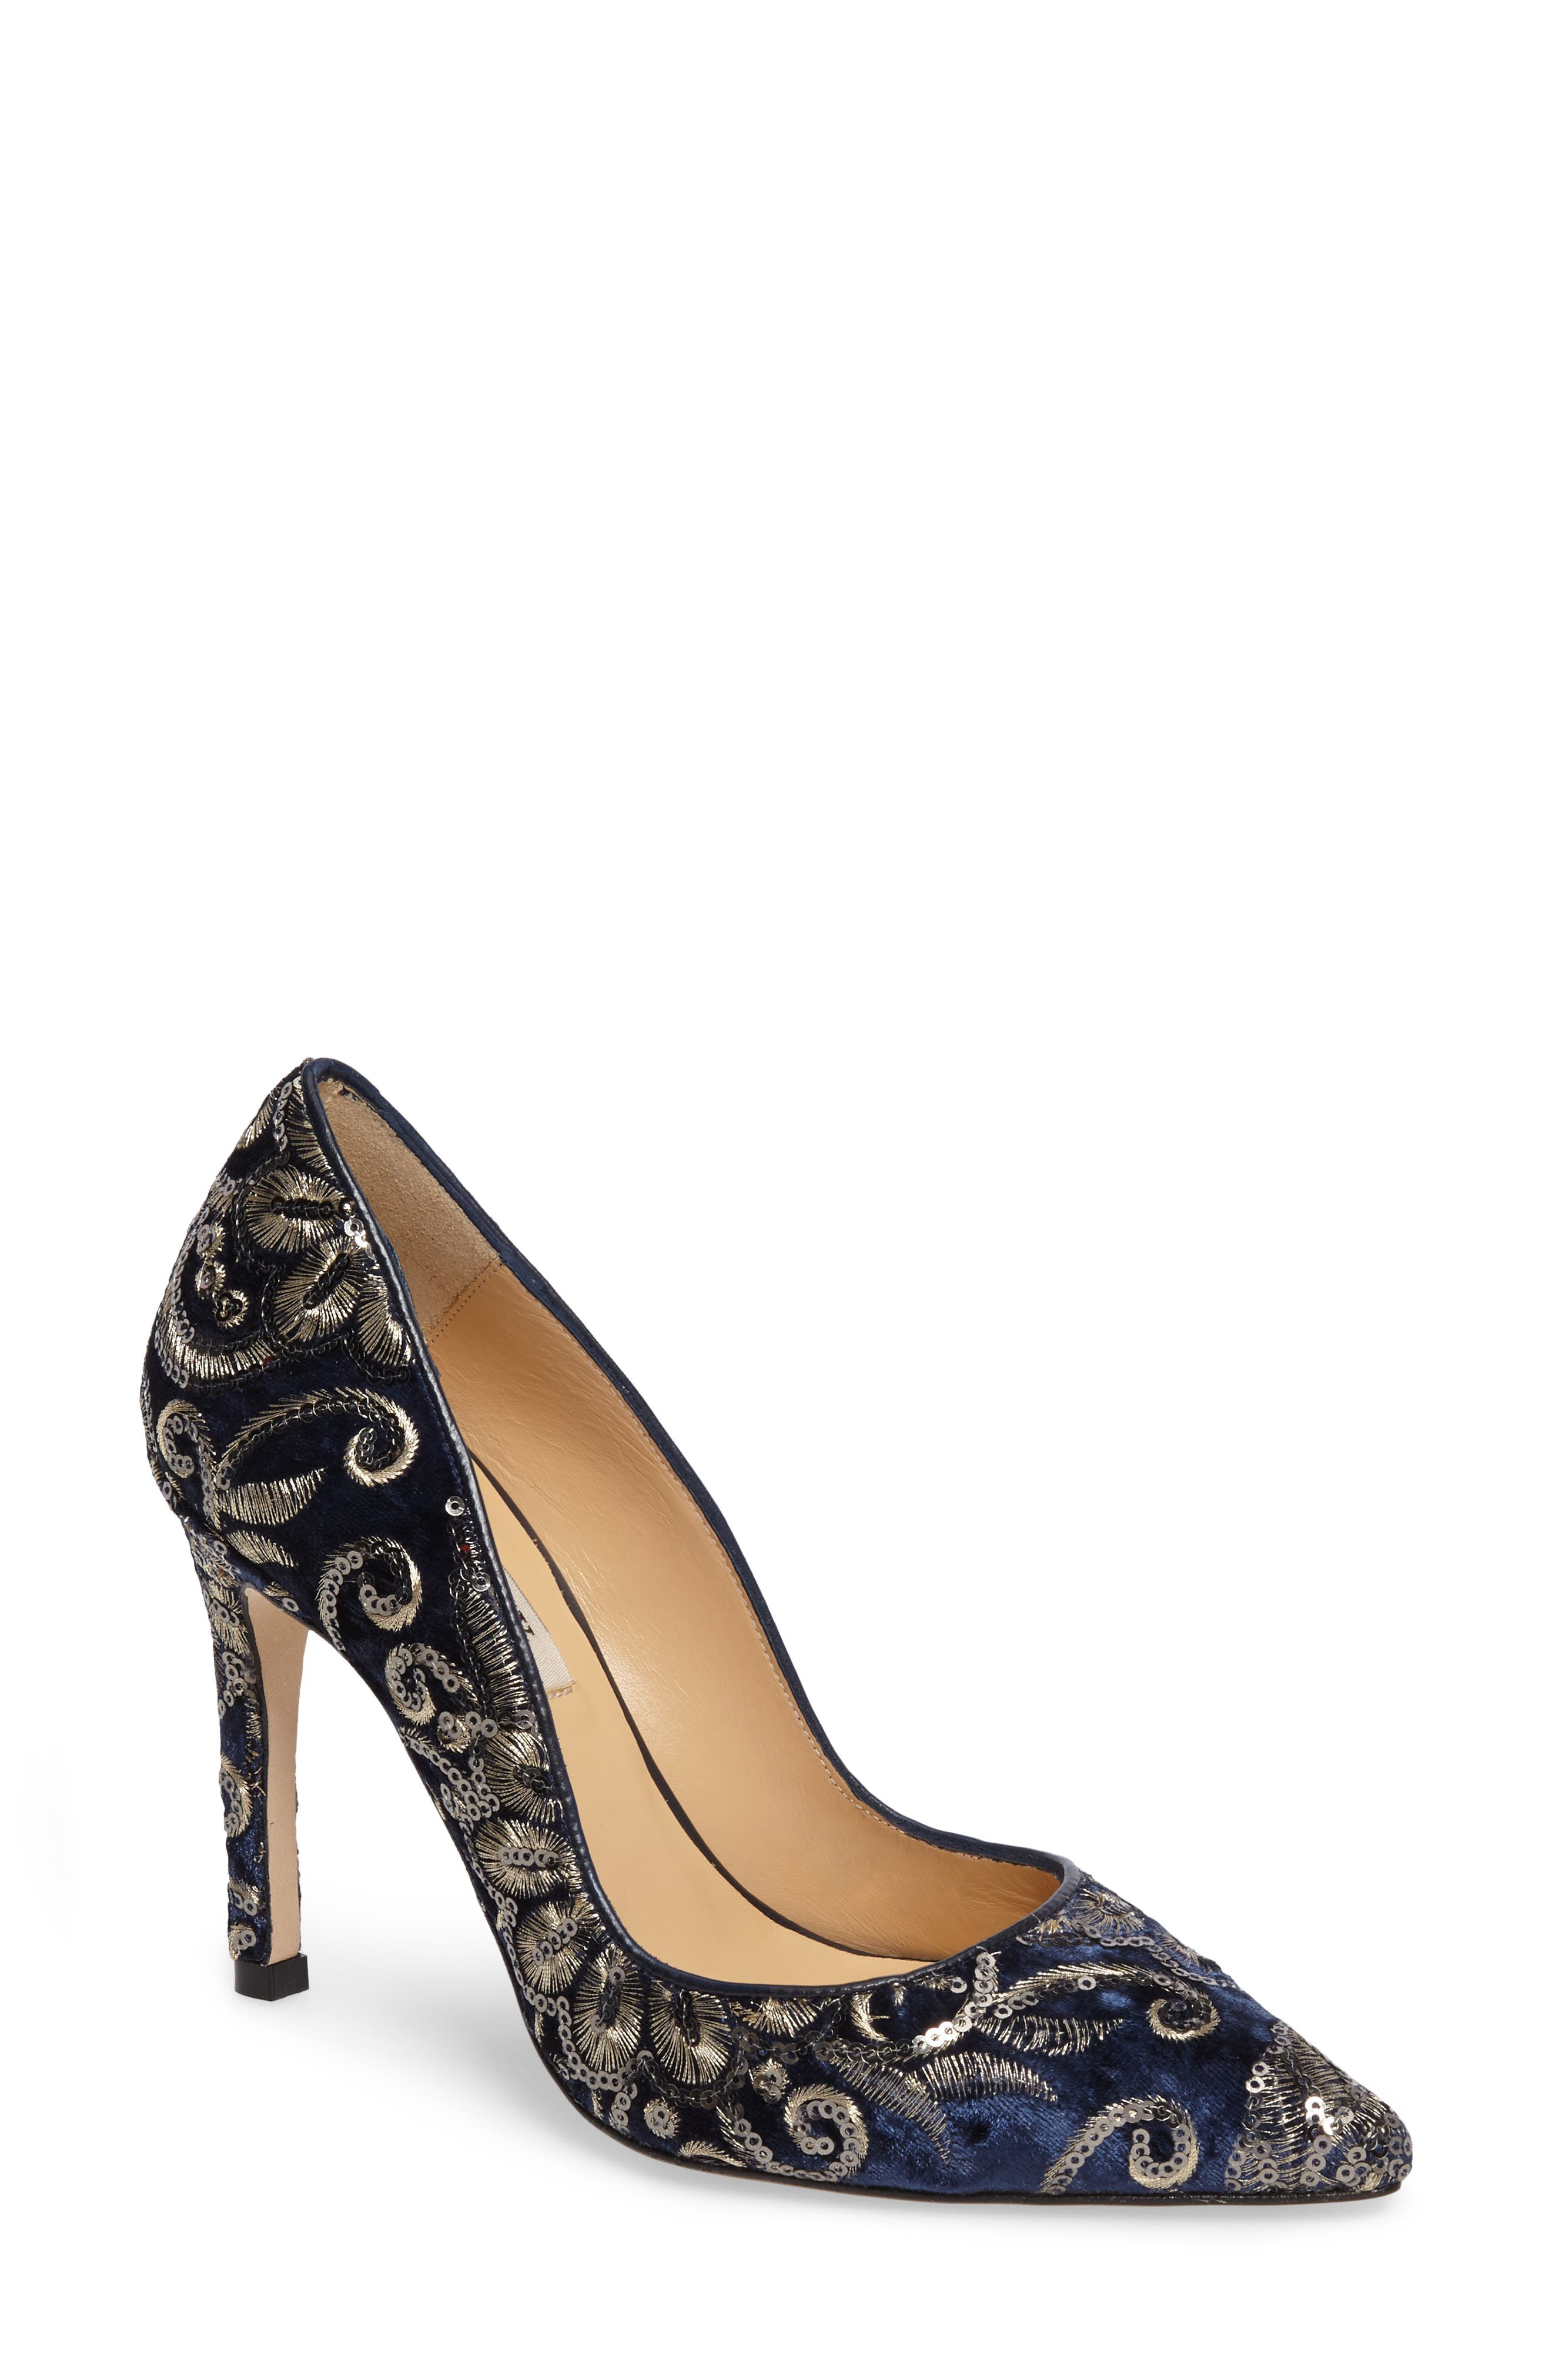 Alternate Image 1 Selected - Badgley Mischka Marilou Pointy Toe Pump (Women)